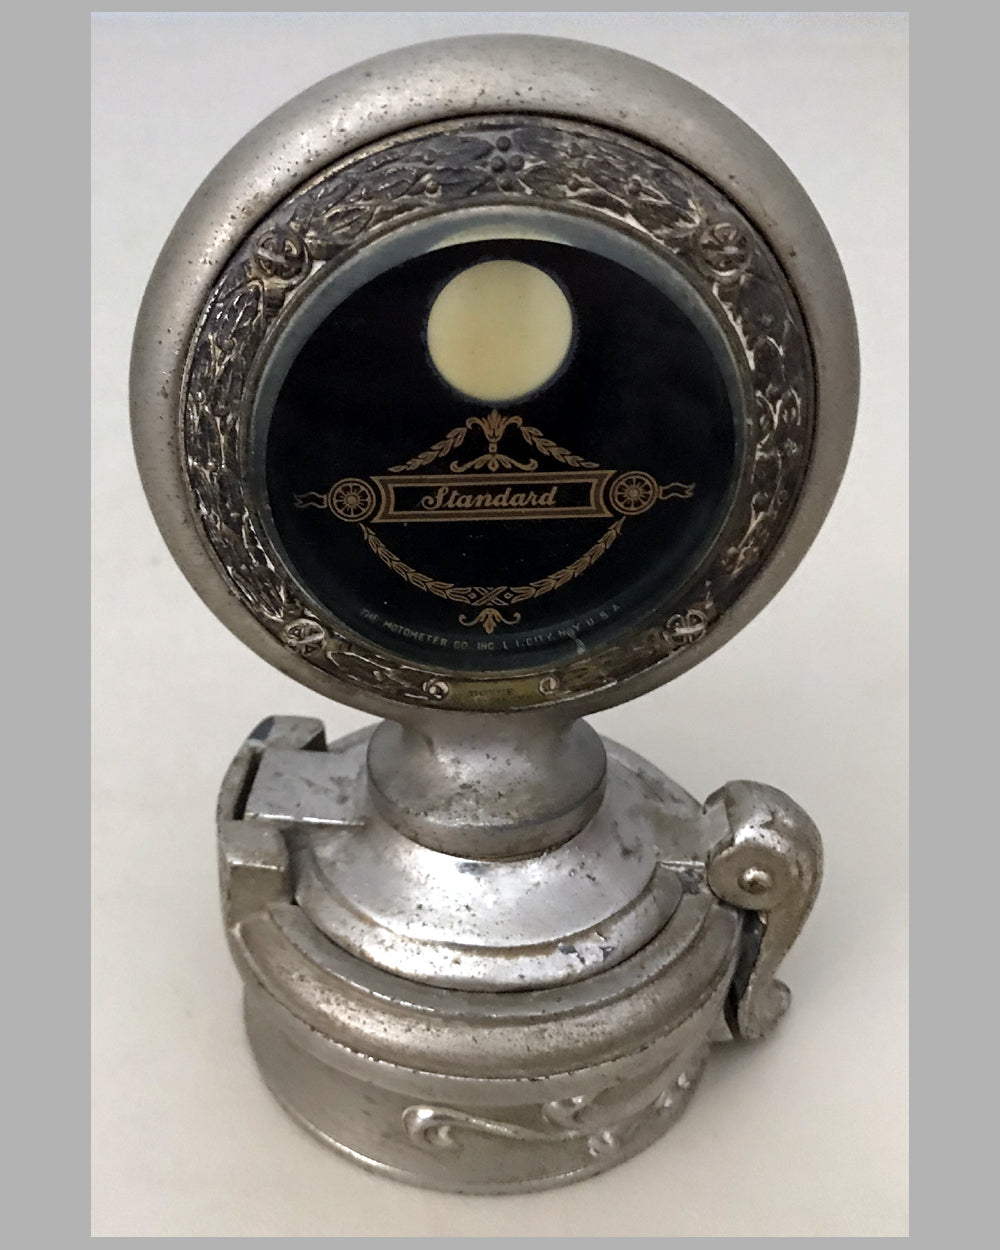 Large standard motometer by Boyce with attached revolving decorative hub cap